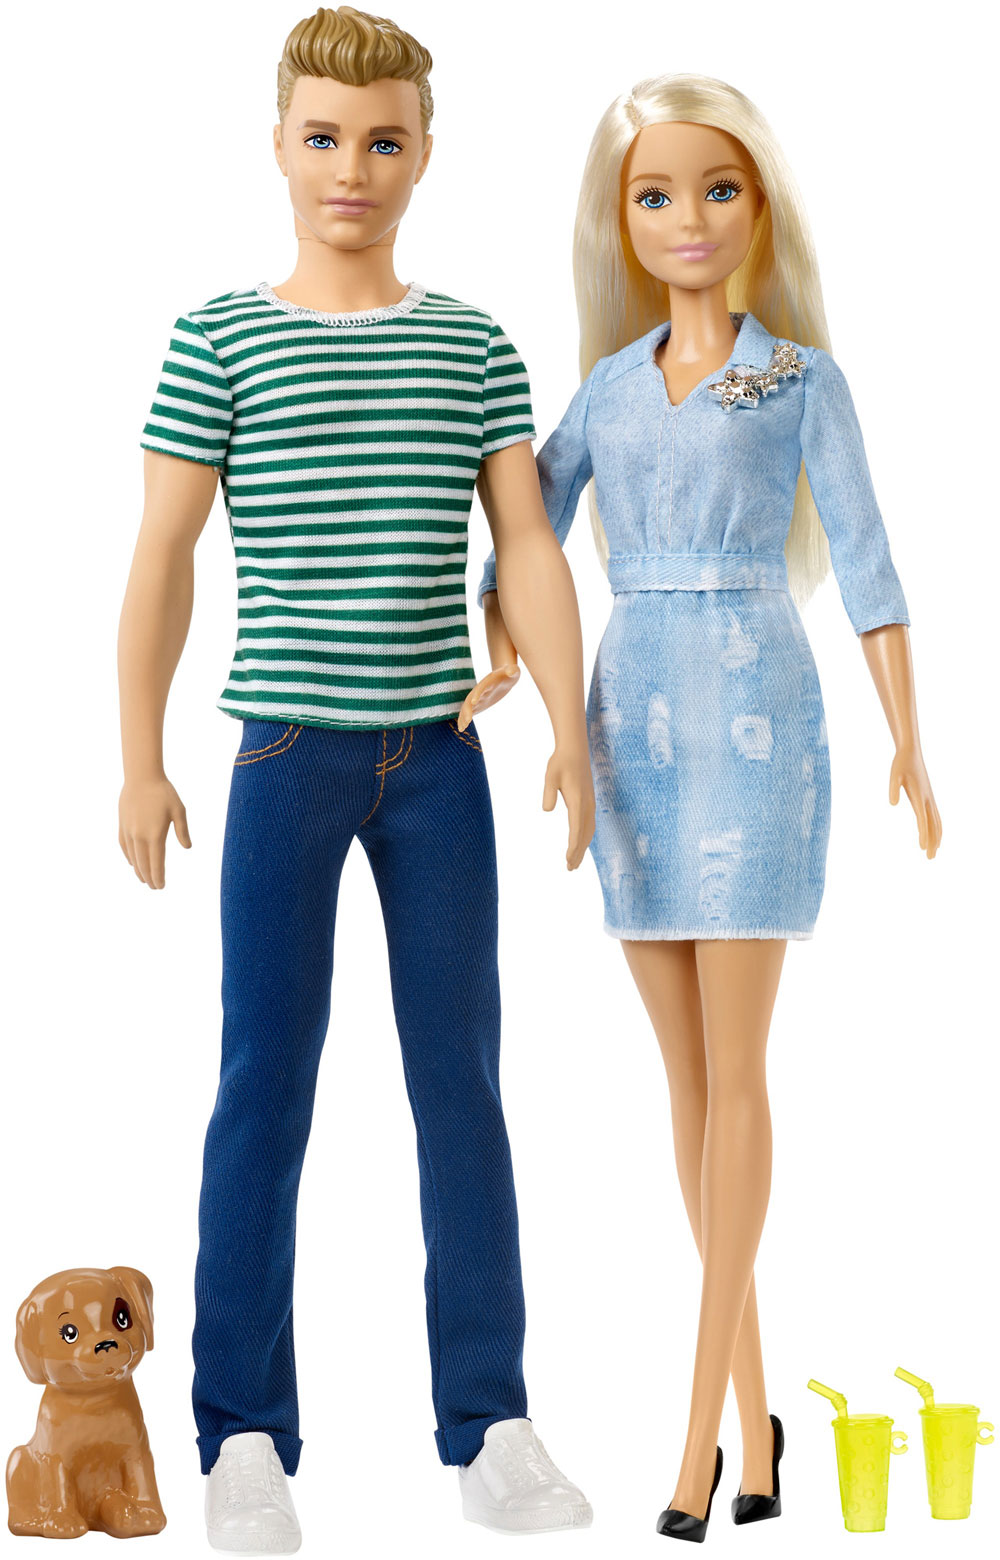 Barbie And Ken Dolls With Puppy Giftset Toys R Us Canada